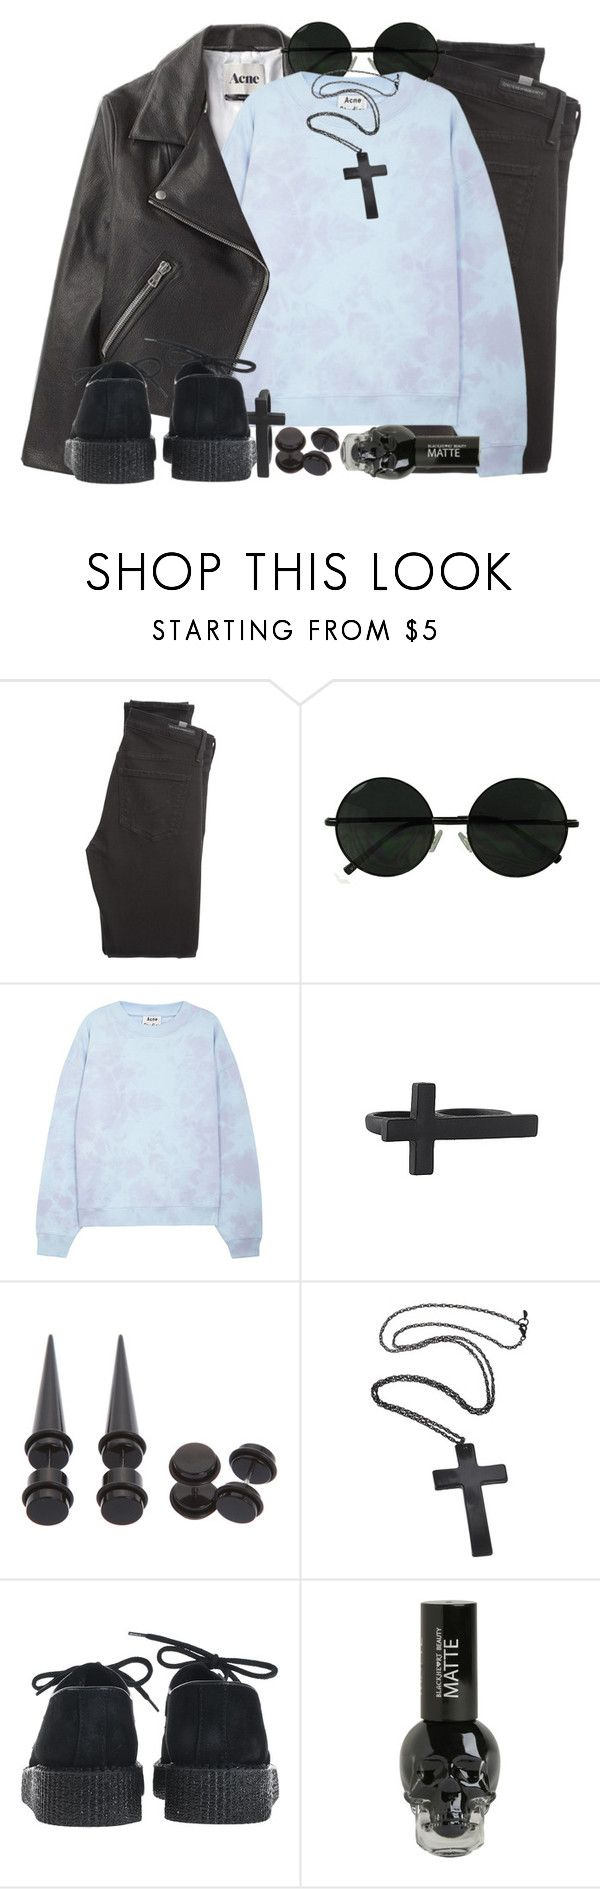 """""""1263"""" by anastaziah2014 ❤ liked on Polyvore featuring Citizens of Humanity, Acne Studios, Forever 21 and Underground"""